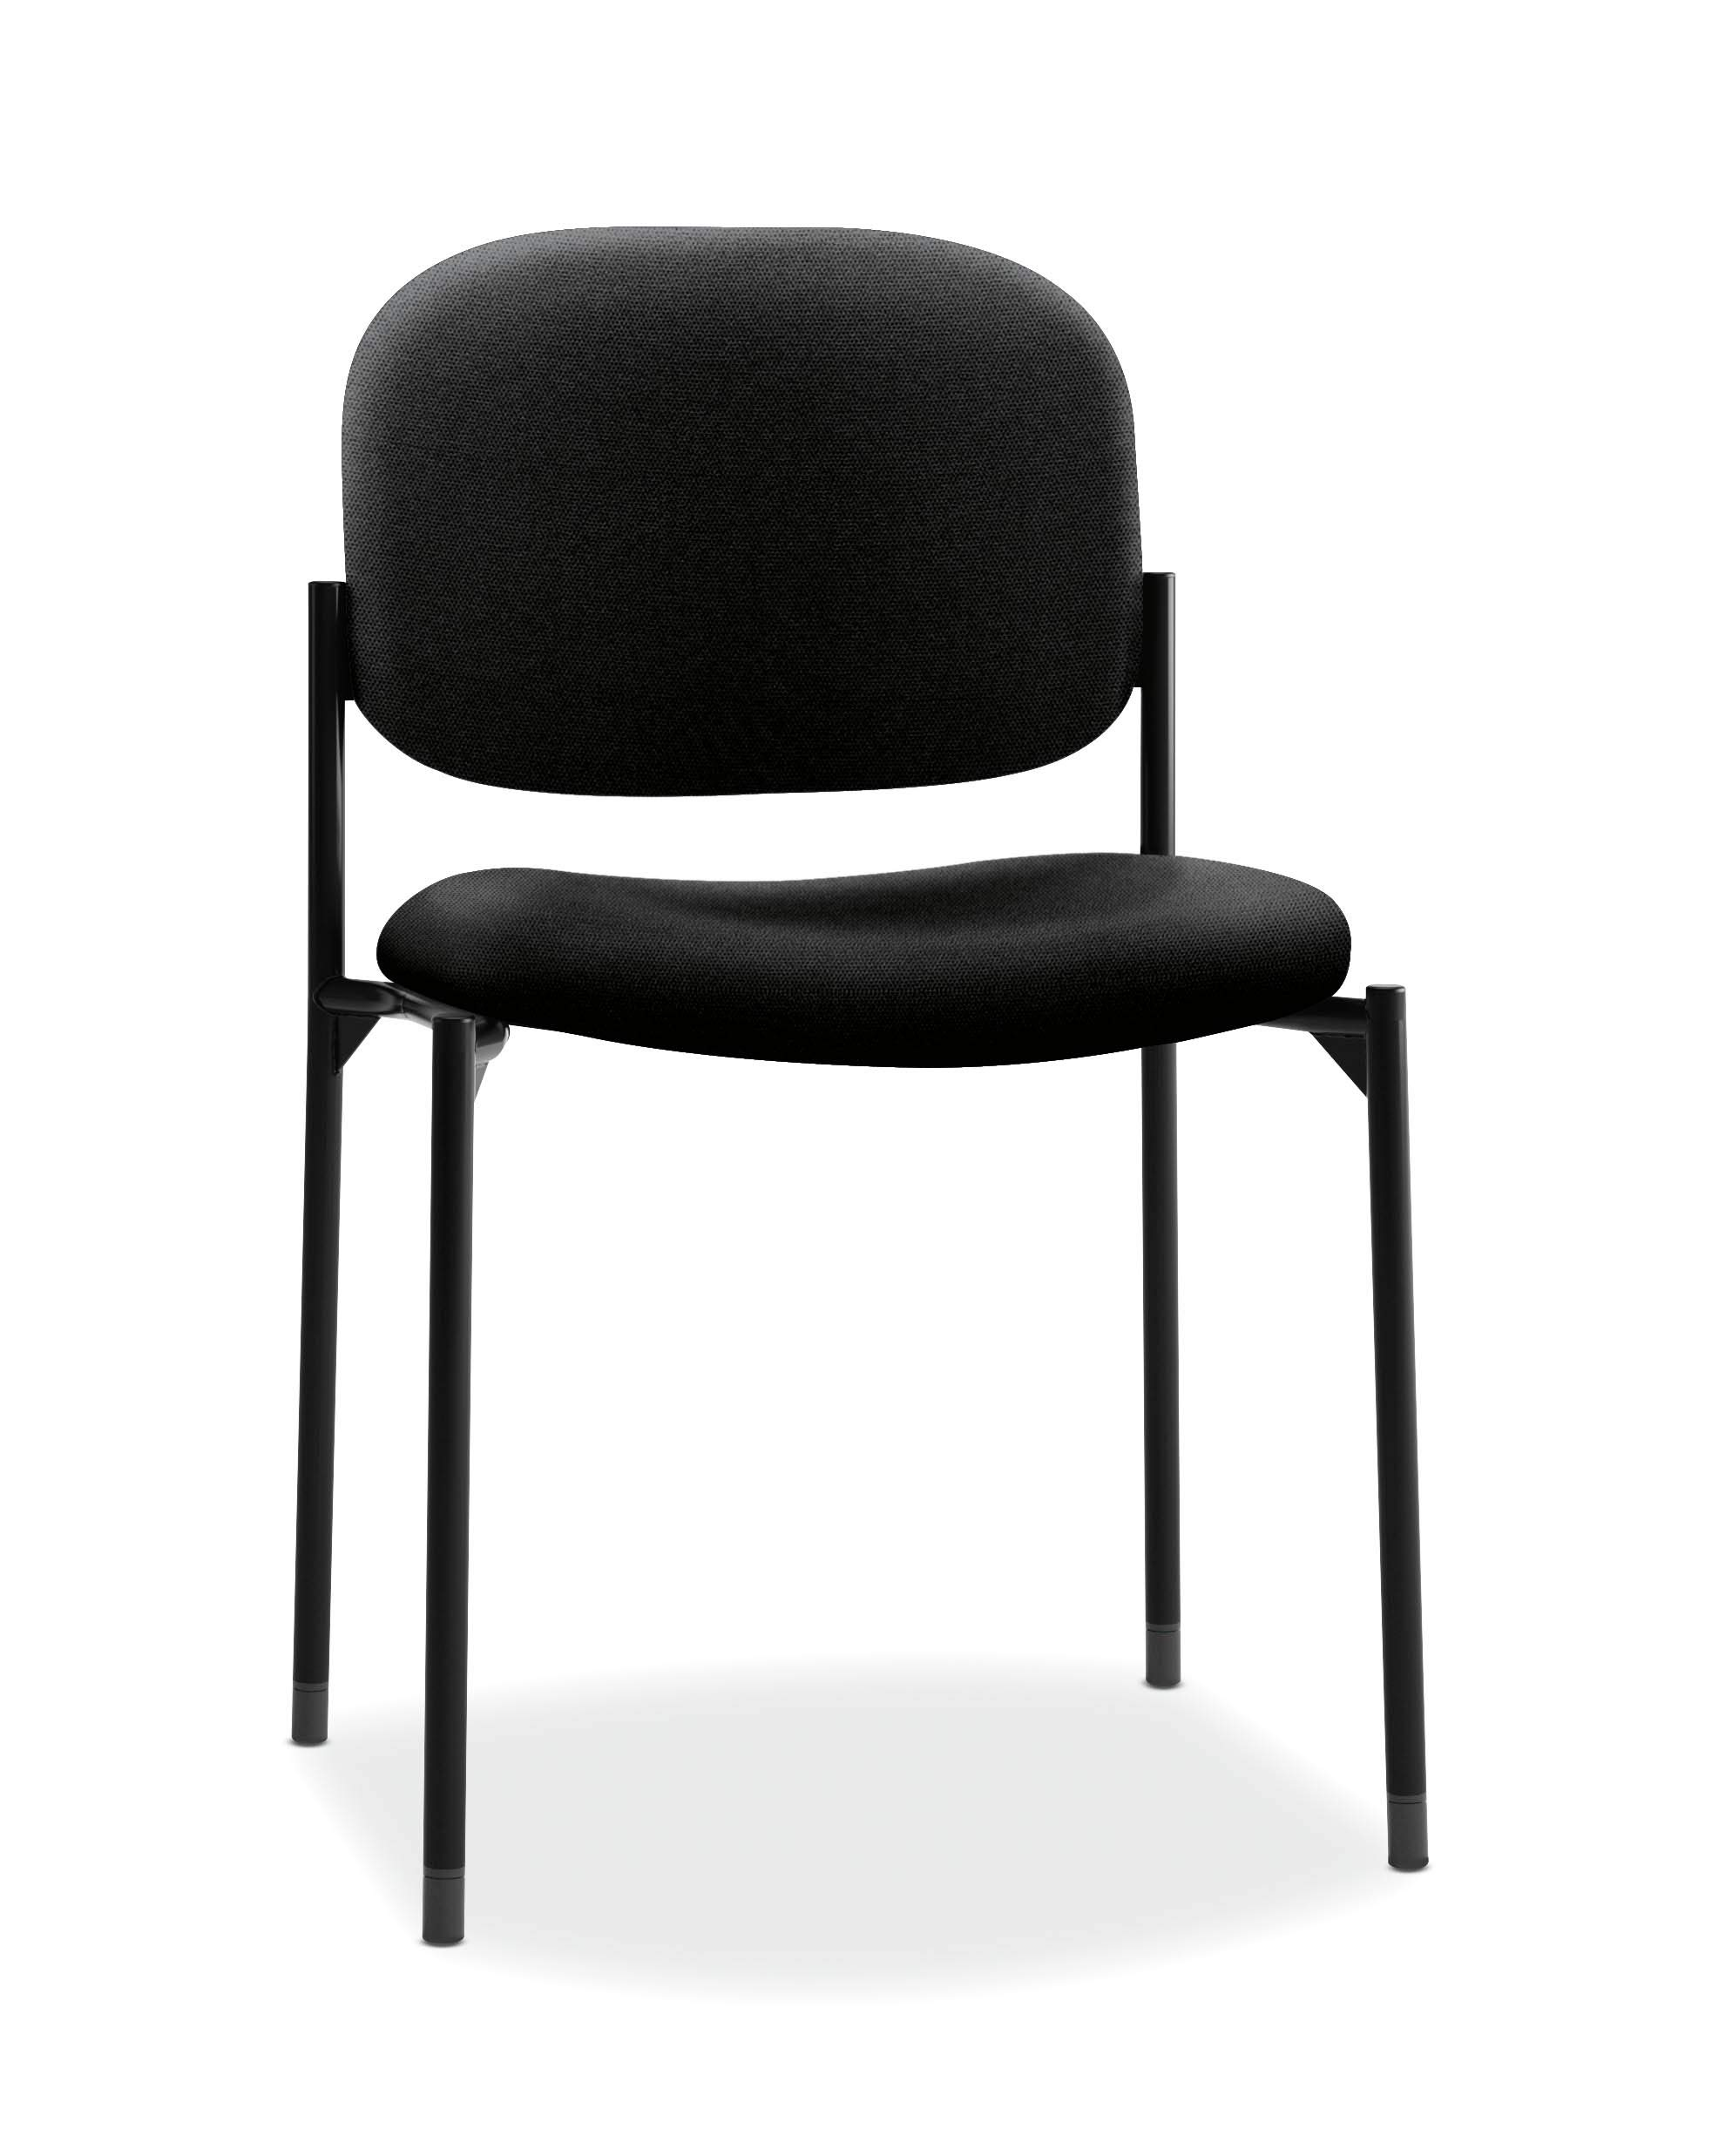 HON Scatter Armless Stacking Guest Chair, in Black (HVL606) by HON